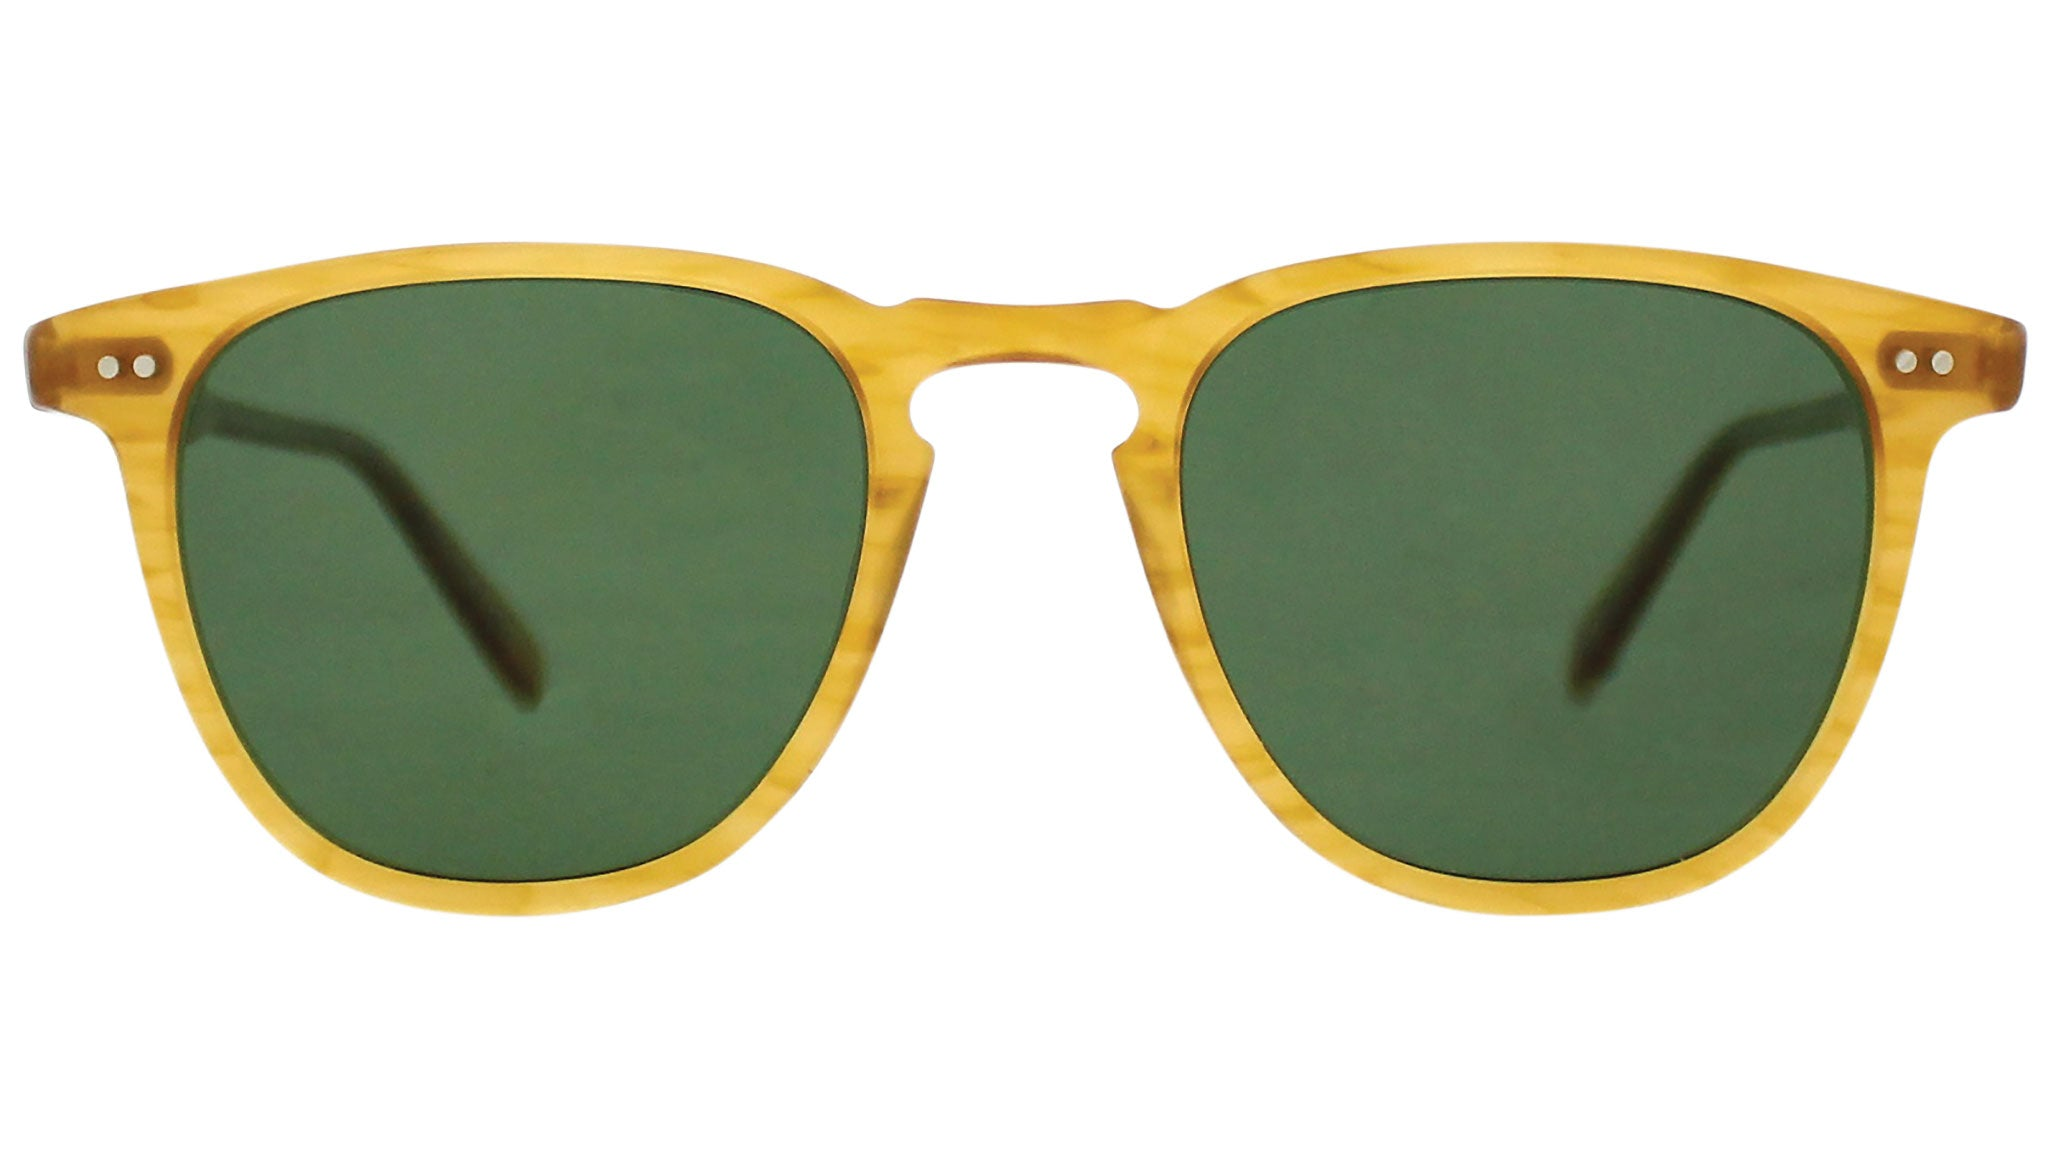 Brooks Sun butterscotch